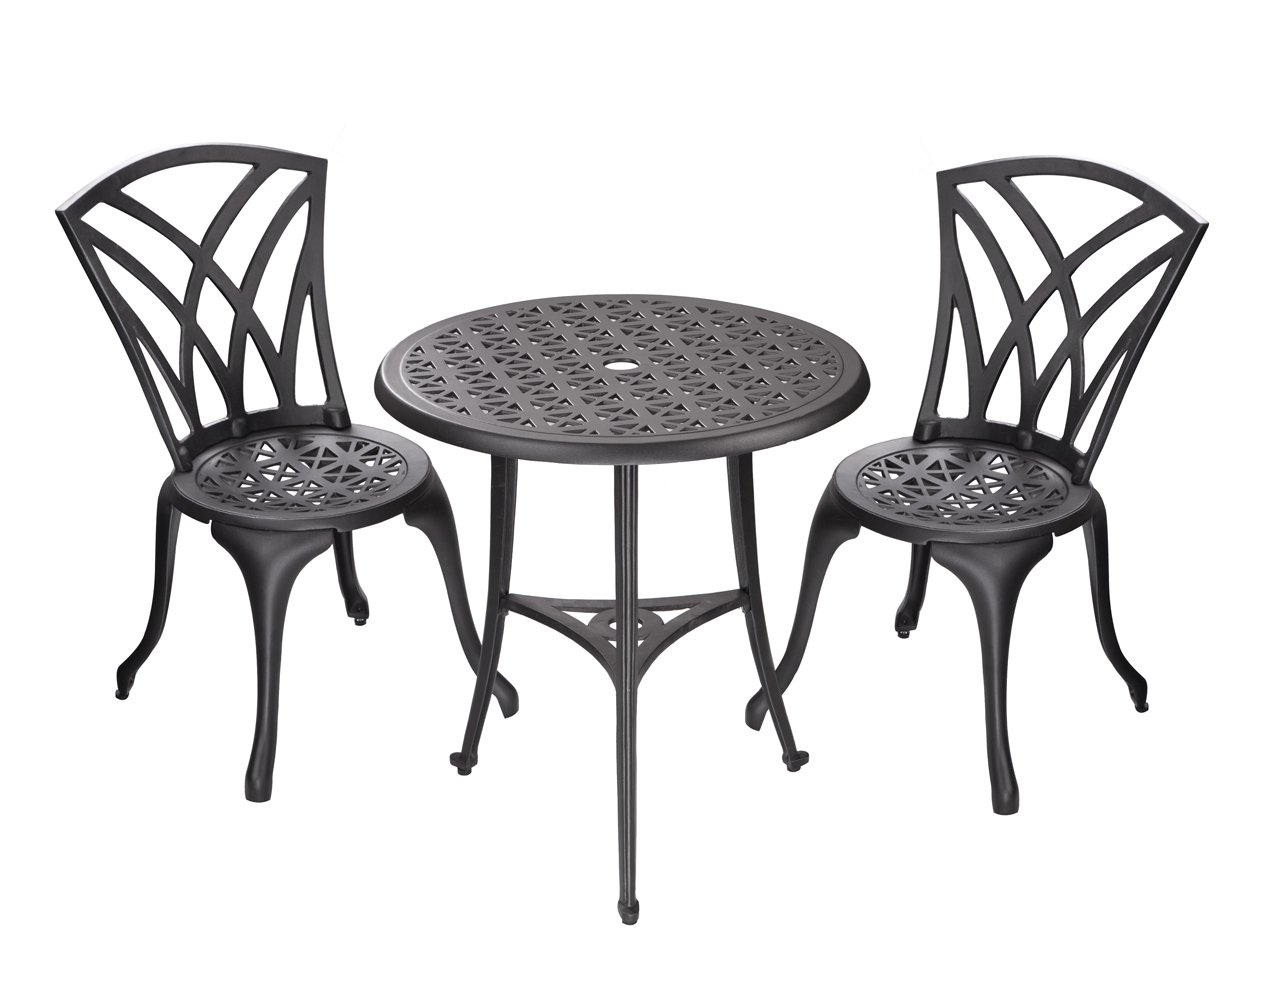 bistrotisch mit 2 st hlen in gussaluminium schwarz malaga online. Black Bedroom Furniture Sets. Home Design Ideas